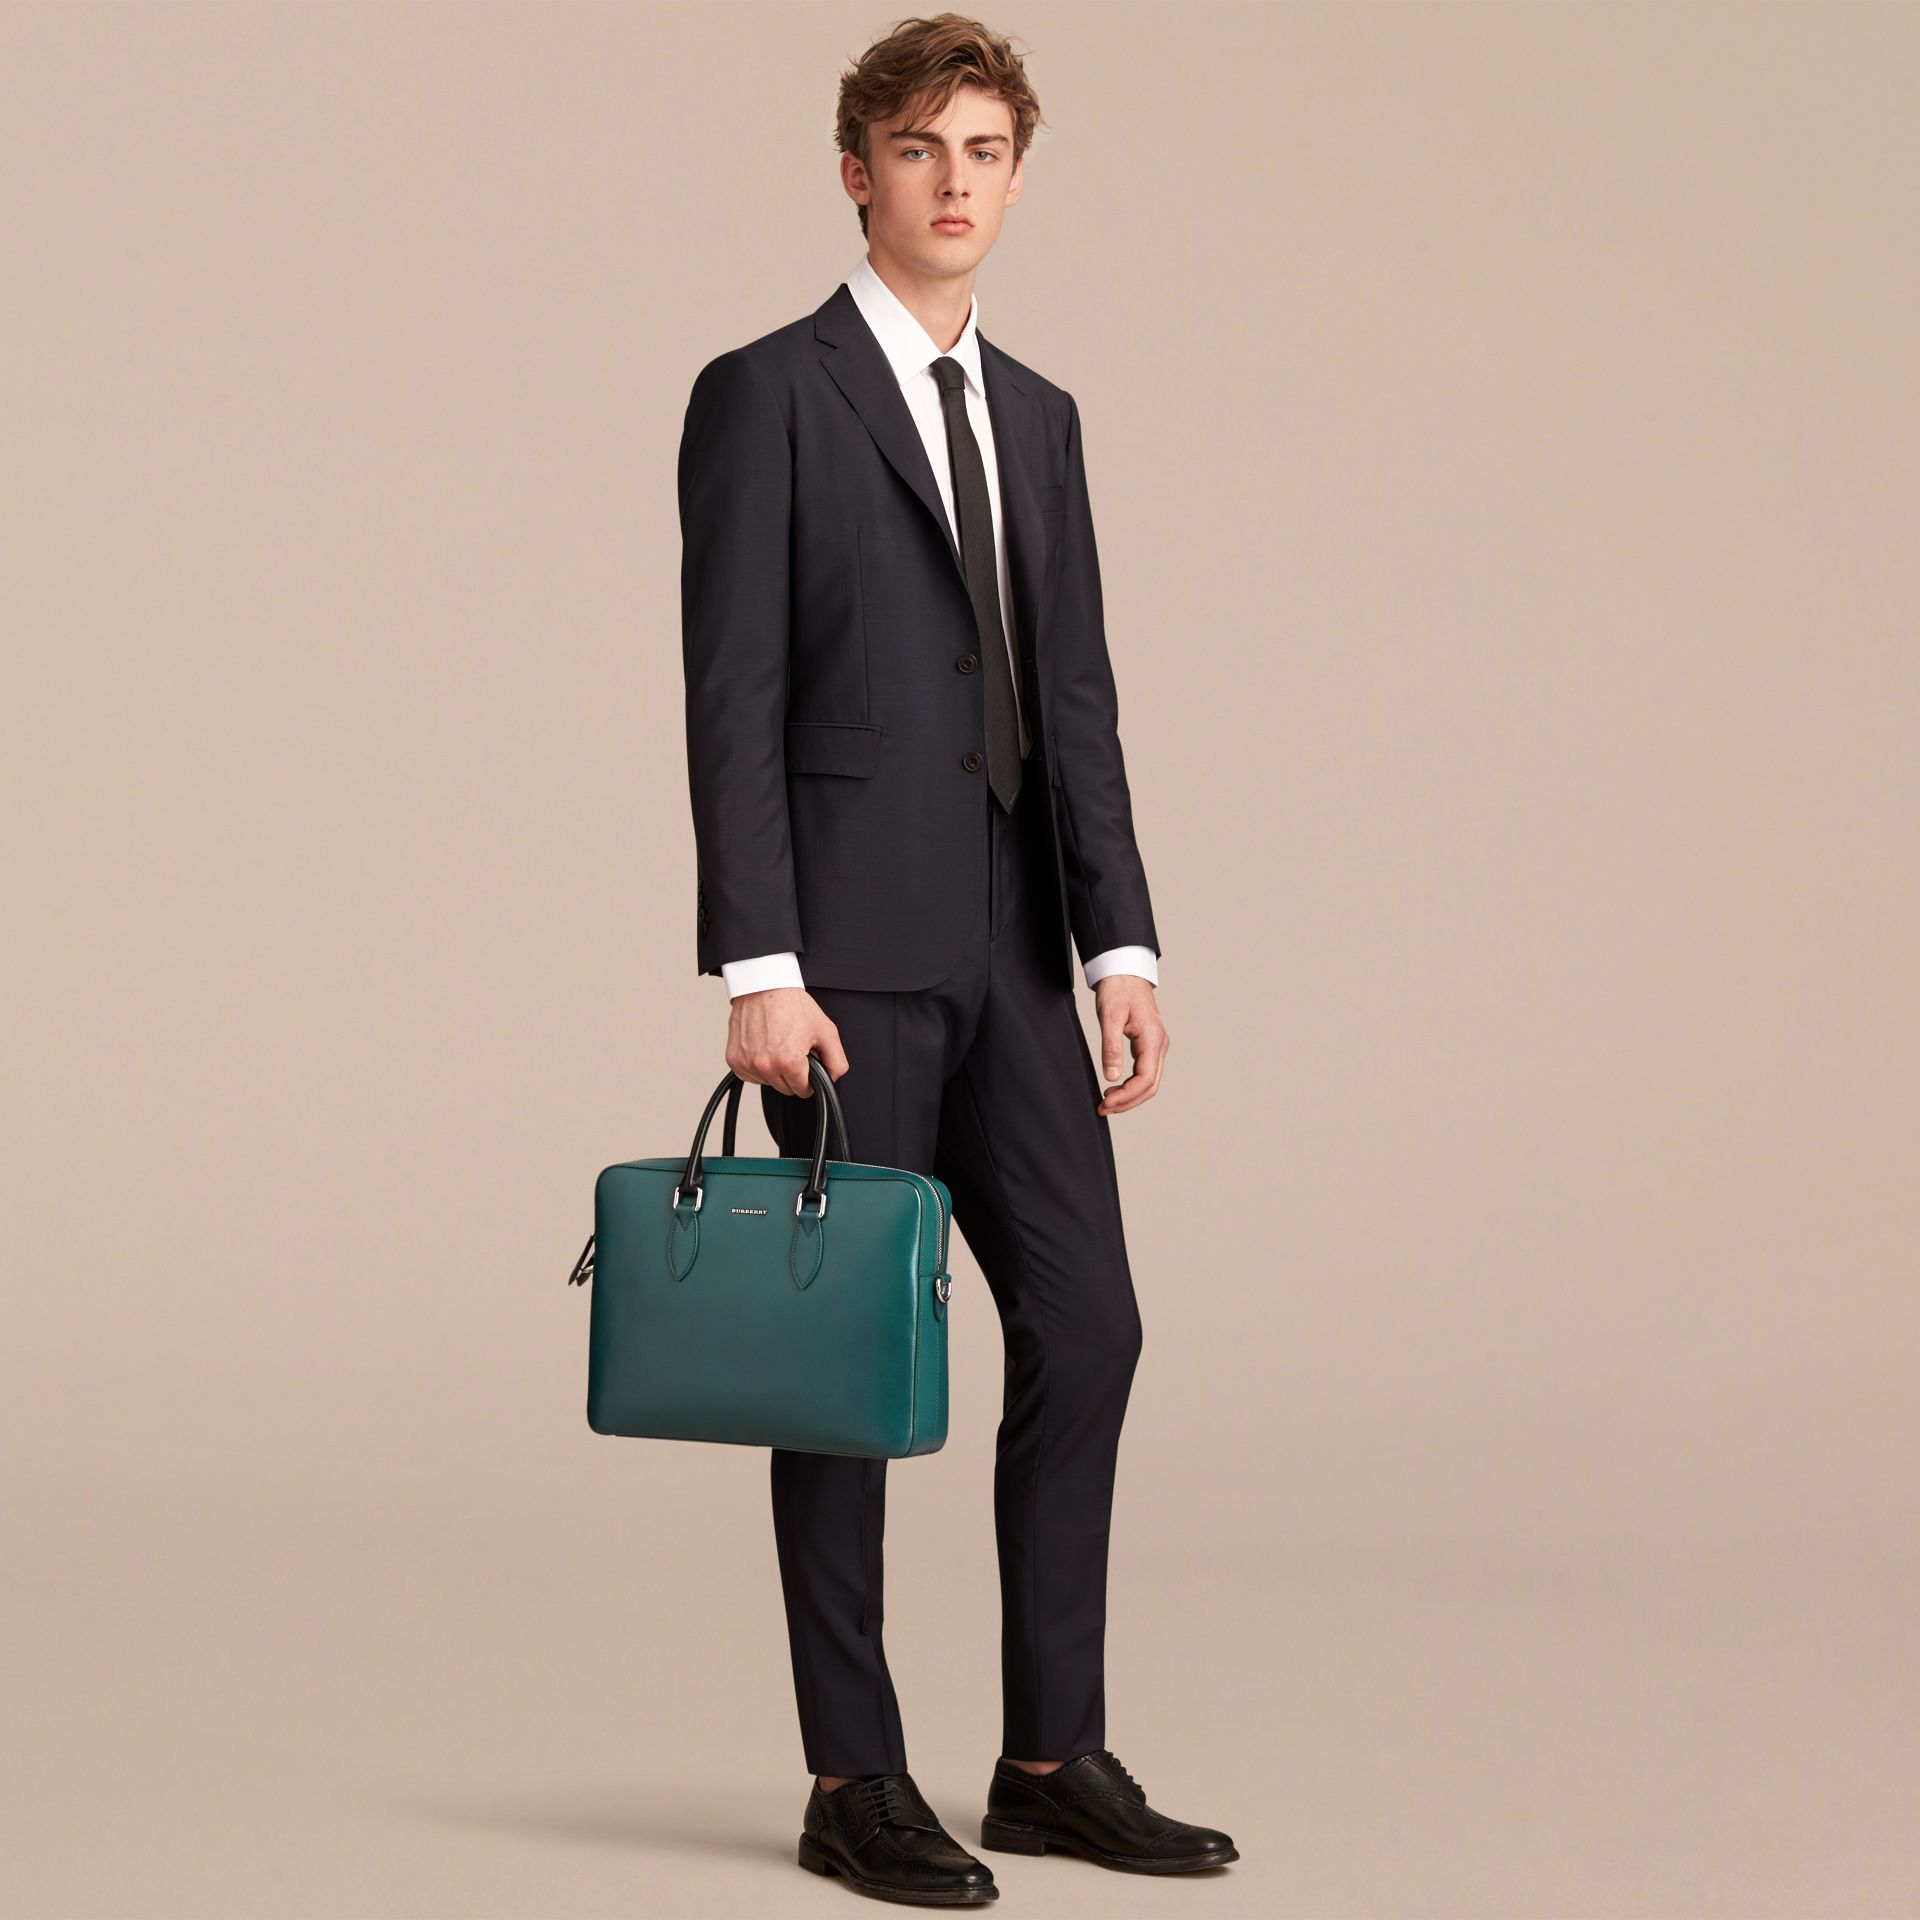 London Leather Briefcase in Dark Teal/black - Men | Burberry Hong Kong - gallery image 3